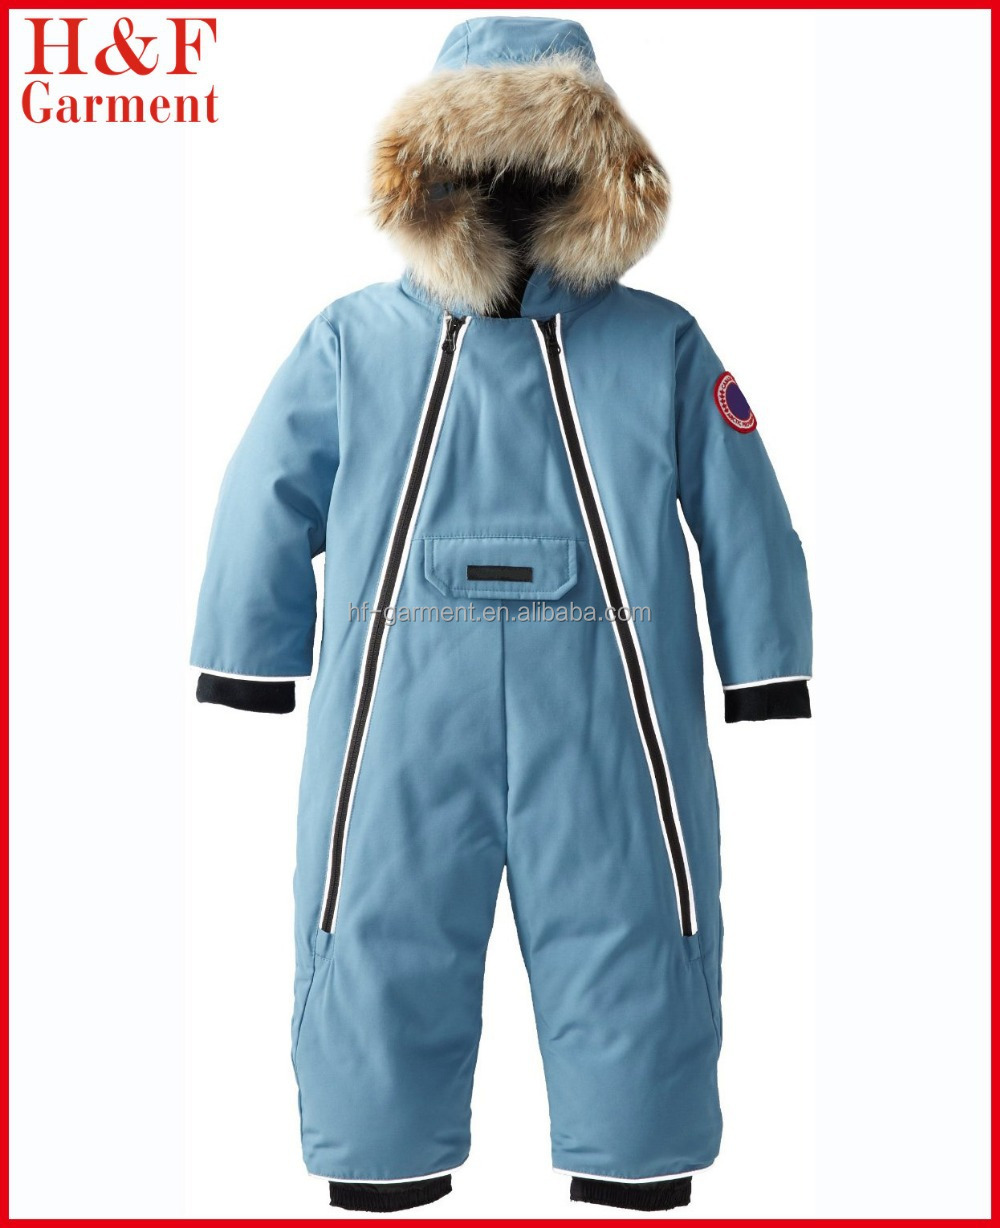 Infant clothing winter customized coveralls insulated in blue